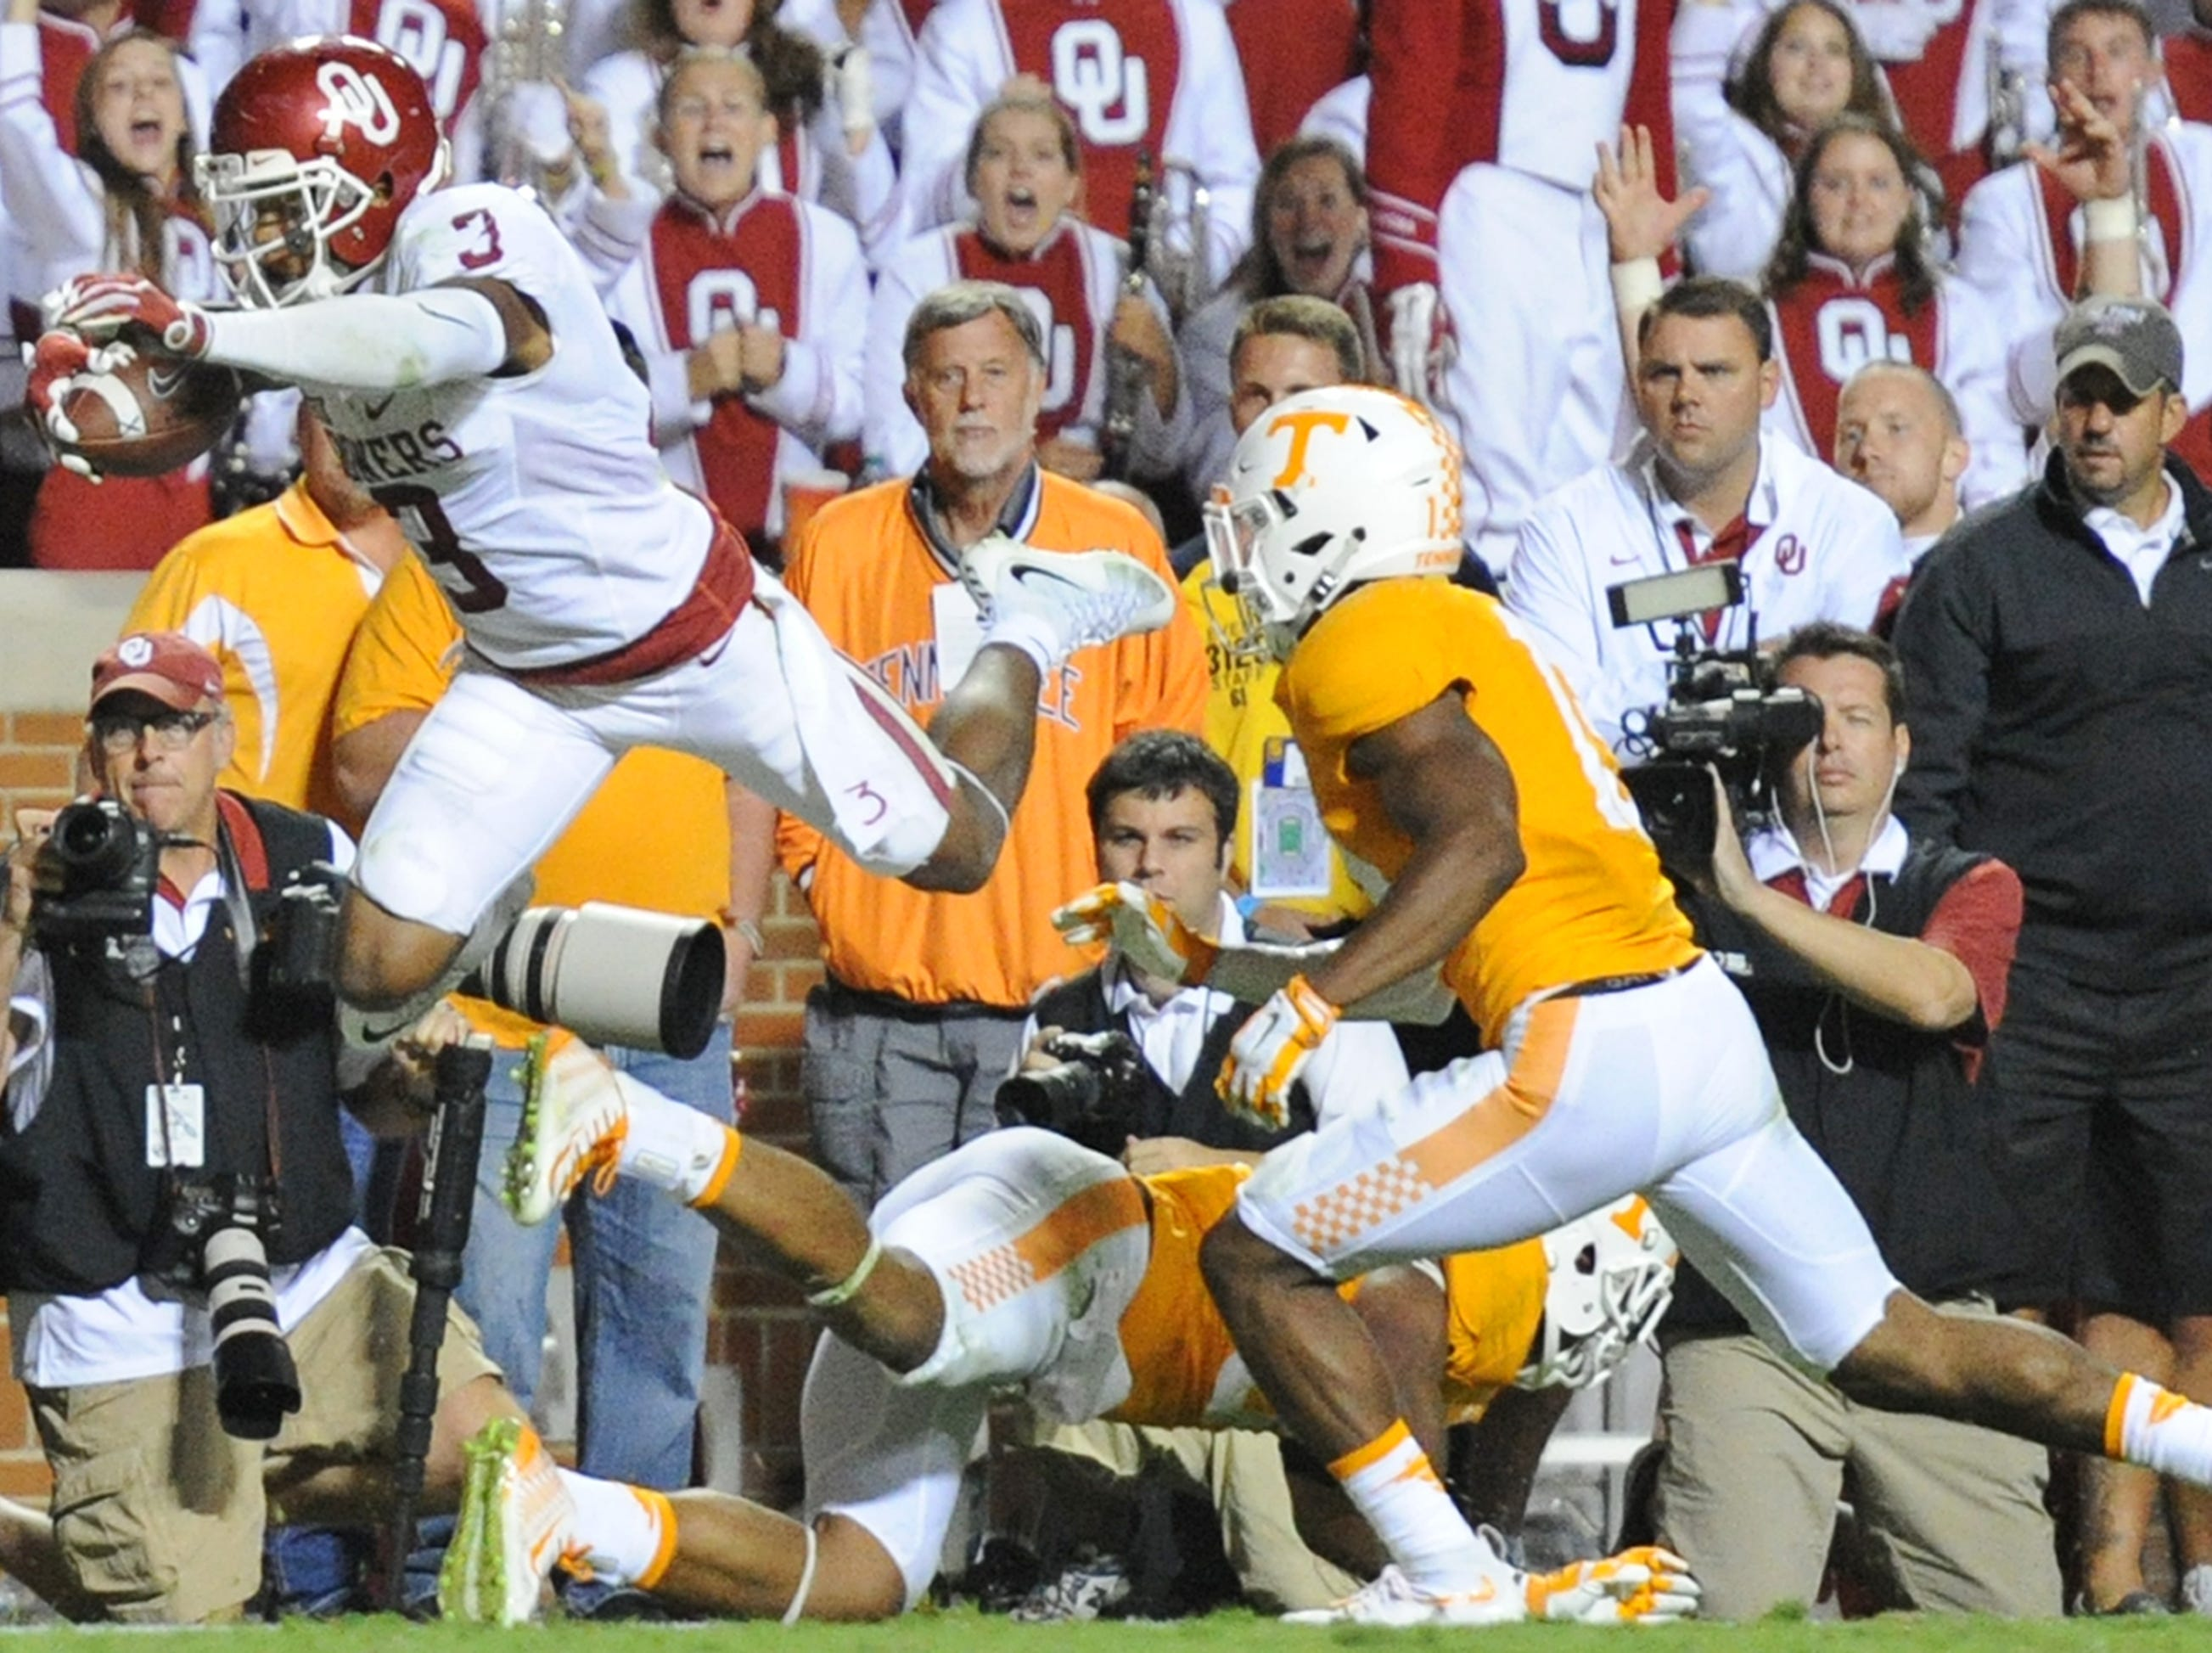 Oklahoma wide receiver Sterling Shepard (3) leaps past Tennessee defensive back Brian Randolph (37) for the game-winning touchdown in overtime against Tennessee at Neyland Stadium on Saturday, Sept. 12, 2015 in Knoxville, Tenn. Oklahoma won 31-24.